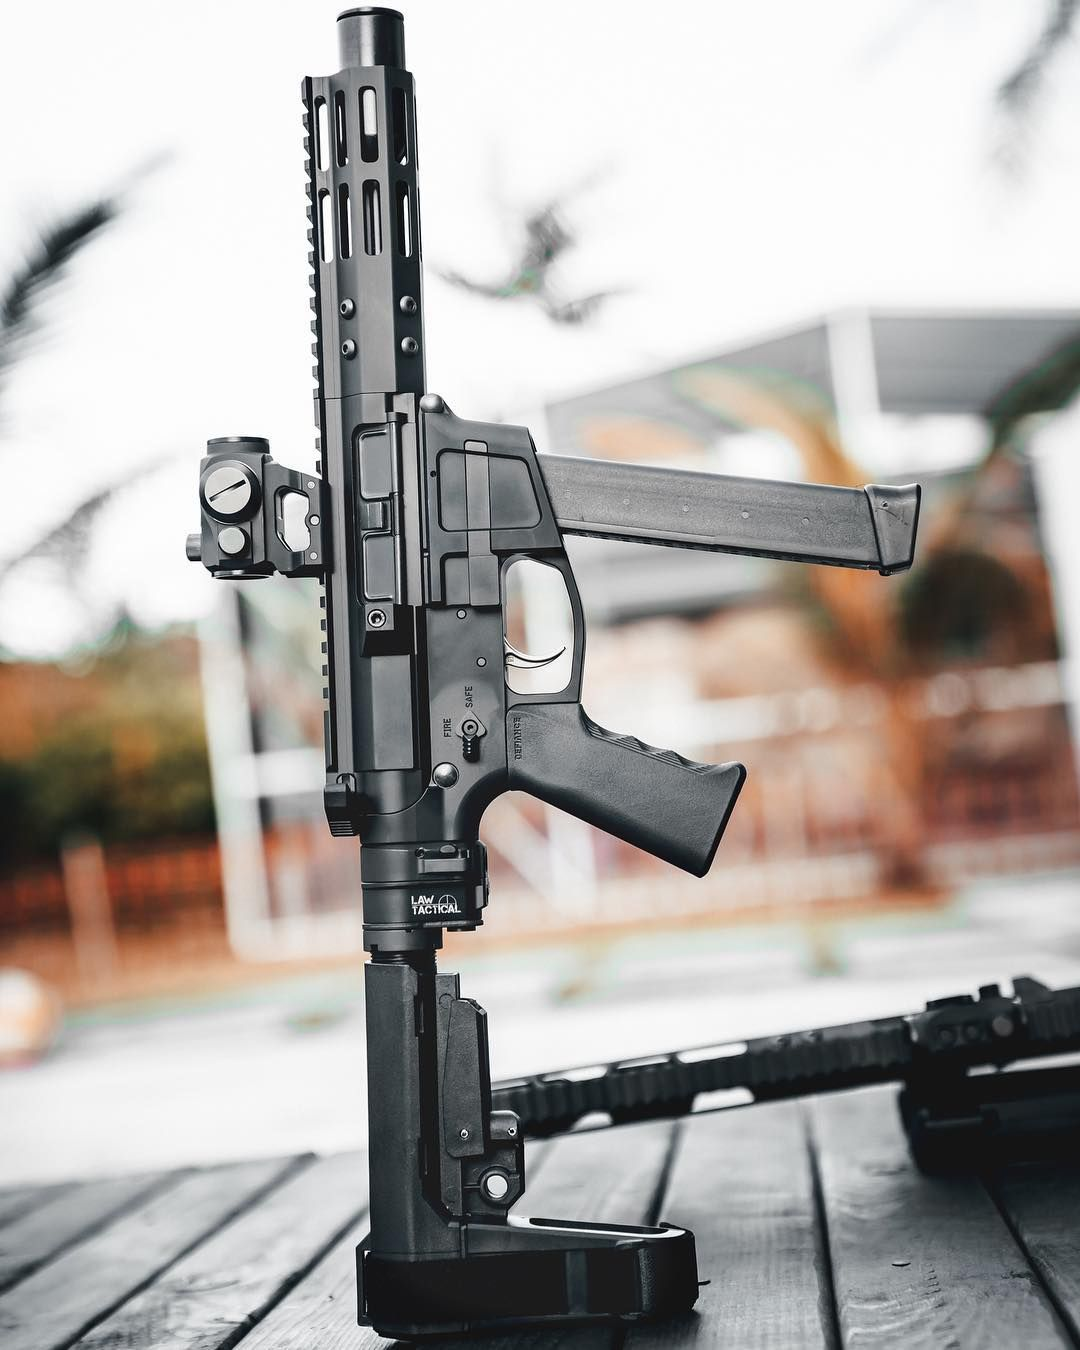 Our Exclusive Foxtrotmikeproducts Fm9 5 Is Getting The Love With Lawtactical Folder Sba3 Brace From Sb Tactical And Scalarworks Mount Who Else Is Down Fo